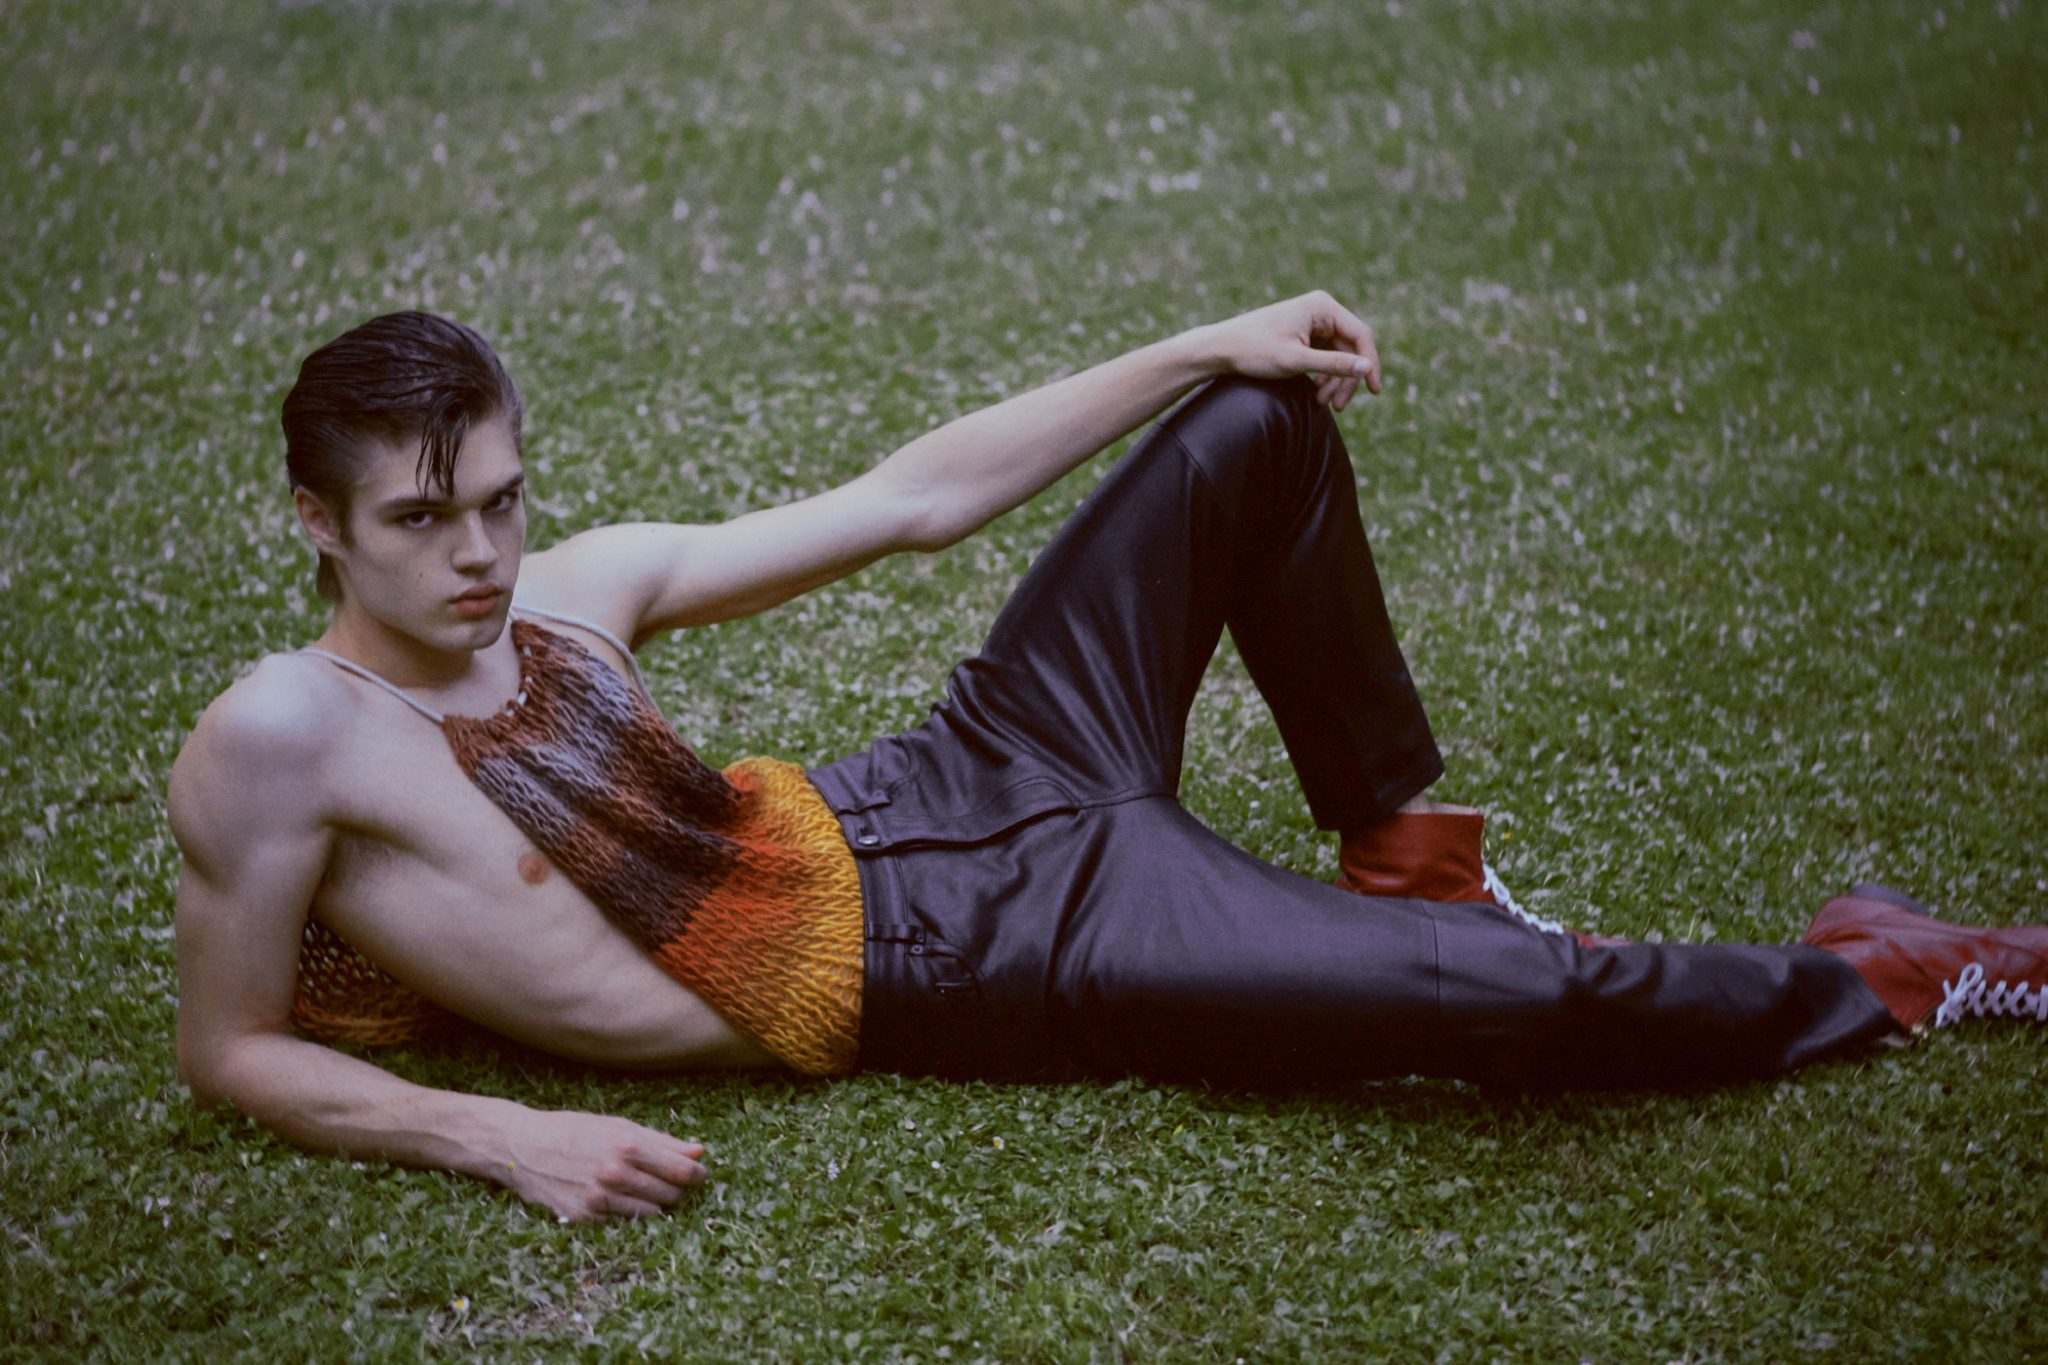 Bloom Of Youth by Alberto Saguar Bloom Of Youth by Alberto Saguar Vanity Teen 虚荣青年 Menswear & new faces magazine